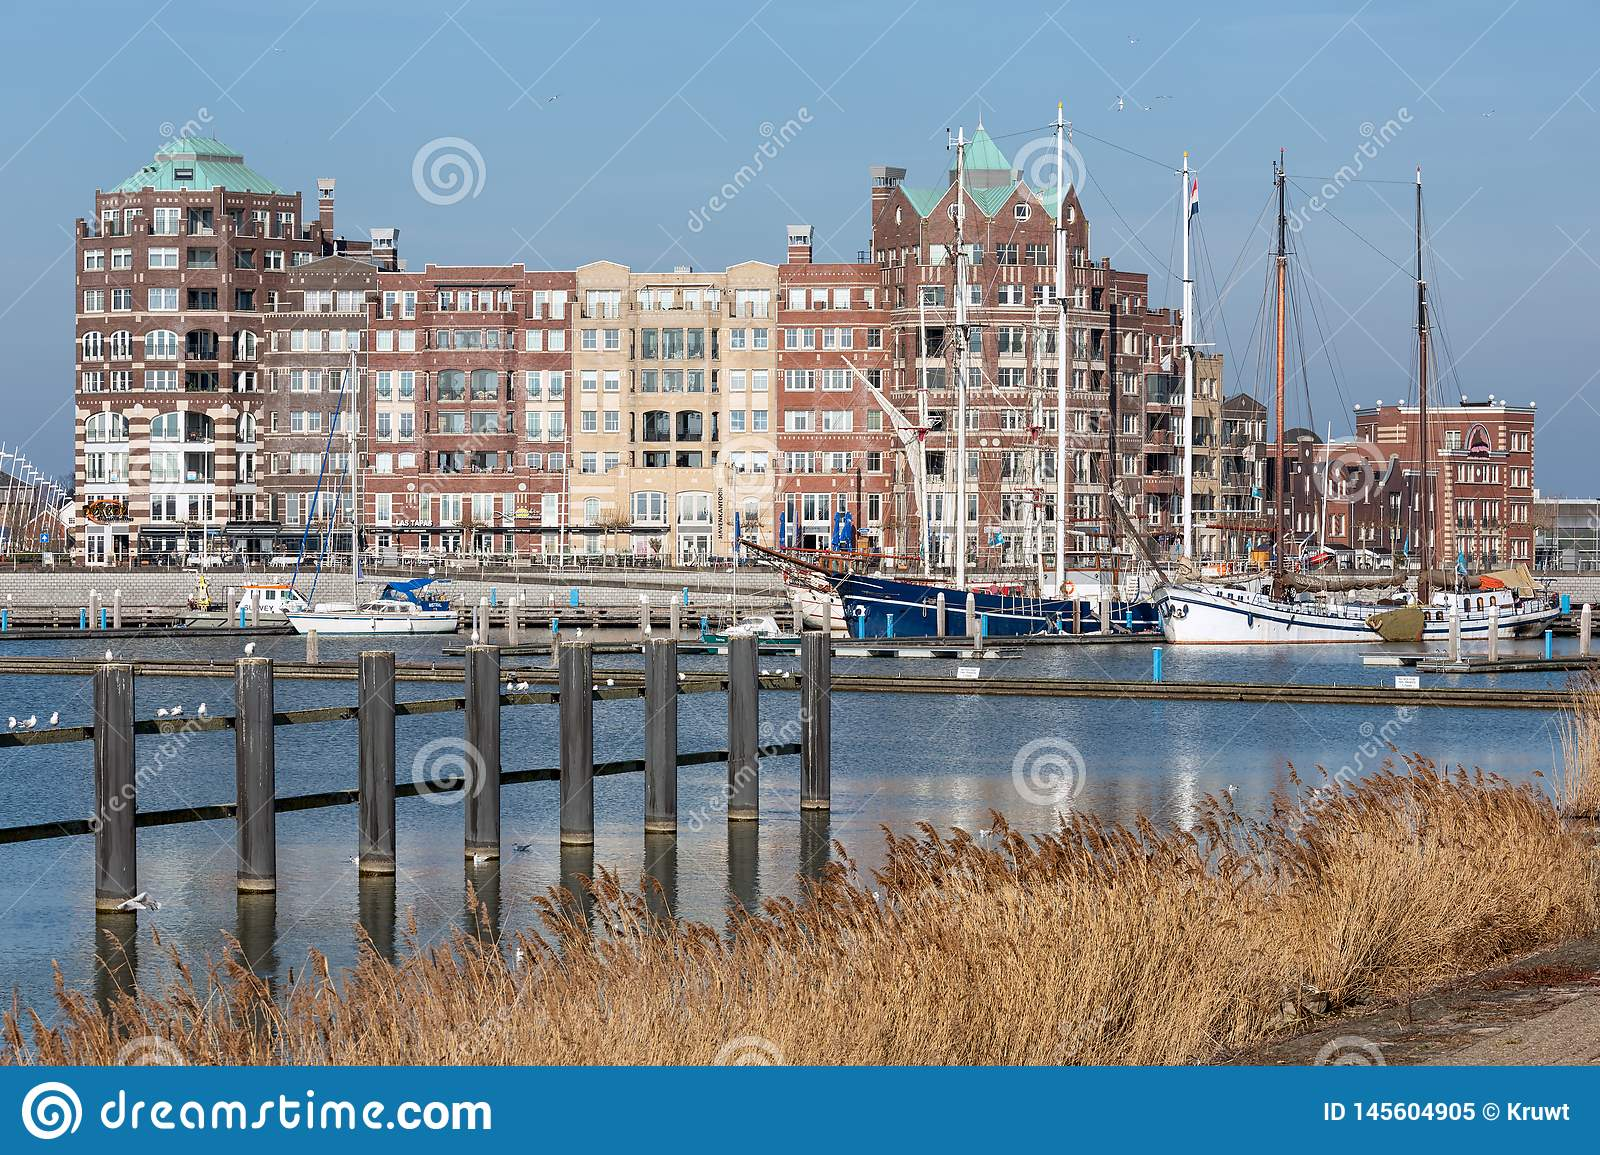 Dutch Harbor of Lelystad with sailing yachts and apartment building